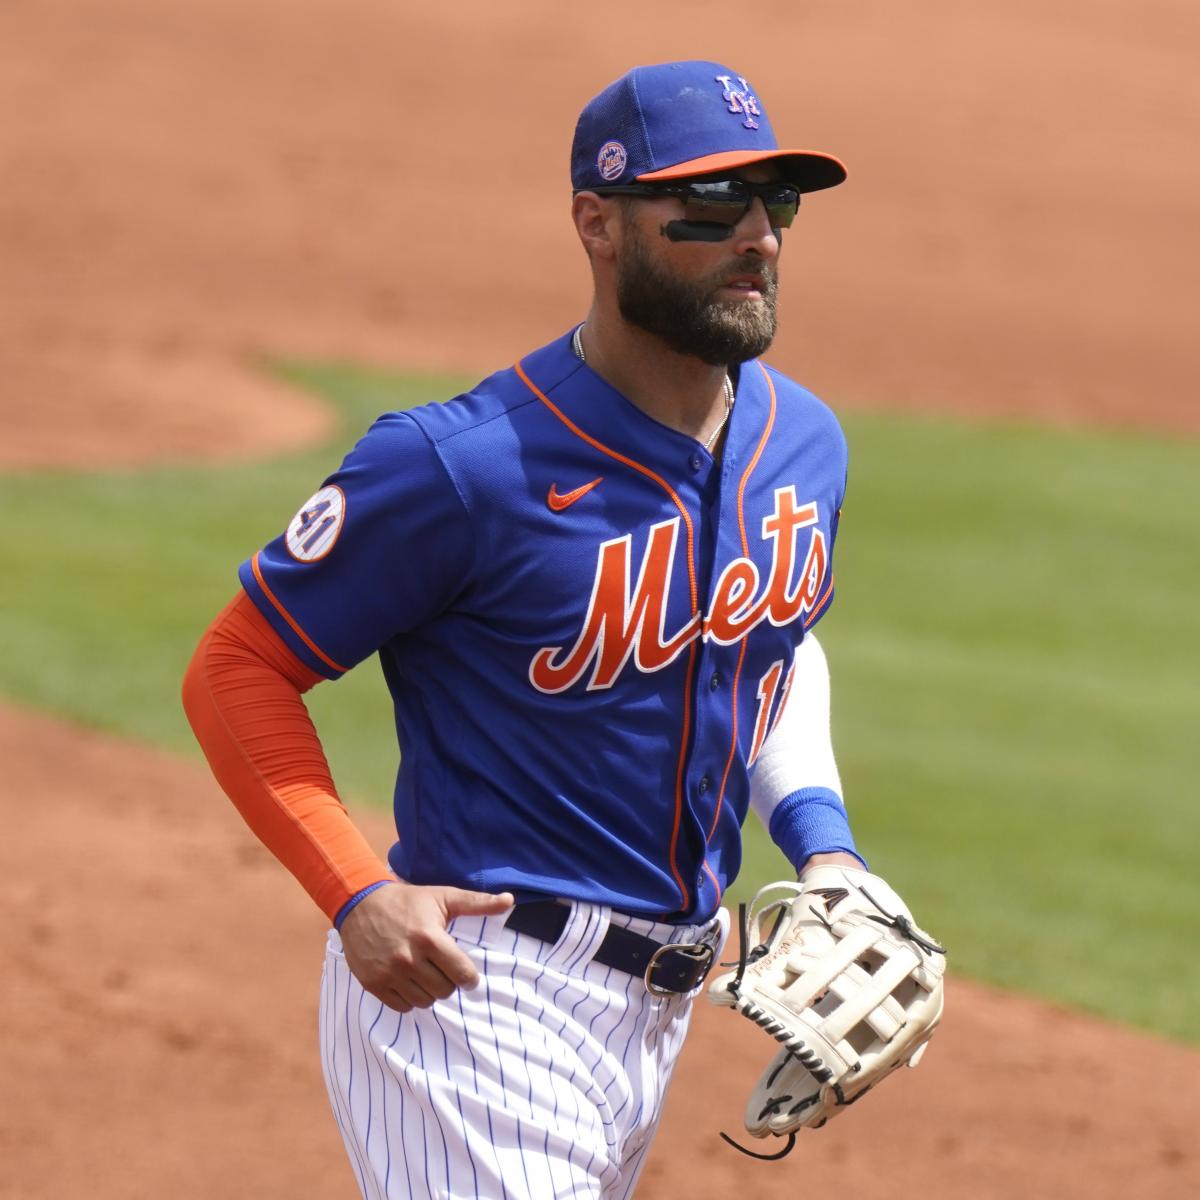 Kevin Pillar Exits Mets vs. Braves with Scary Injury After Taking Pitch to Face thumbnail